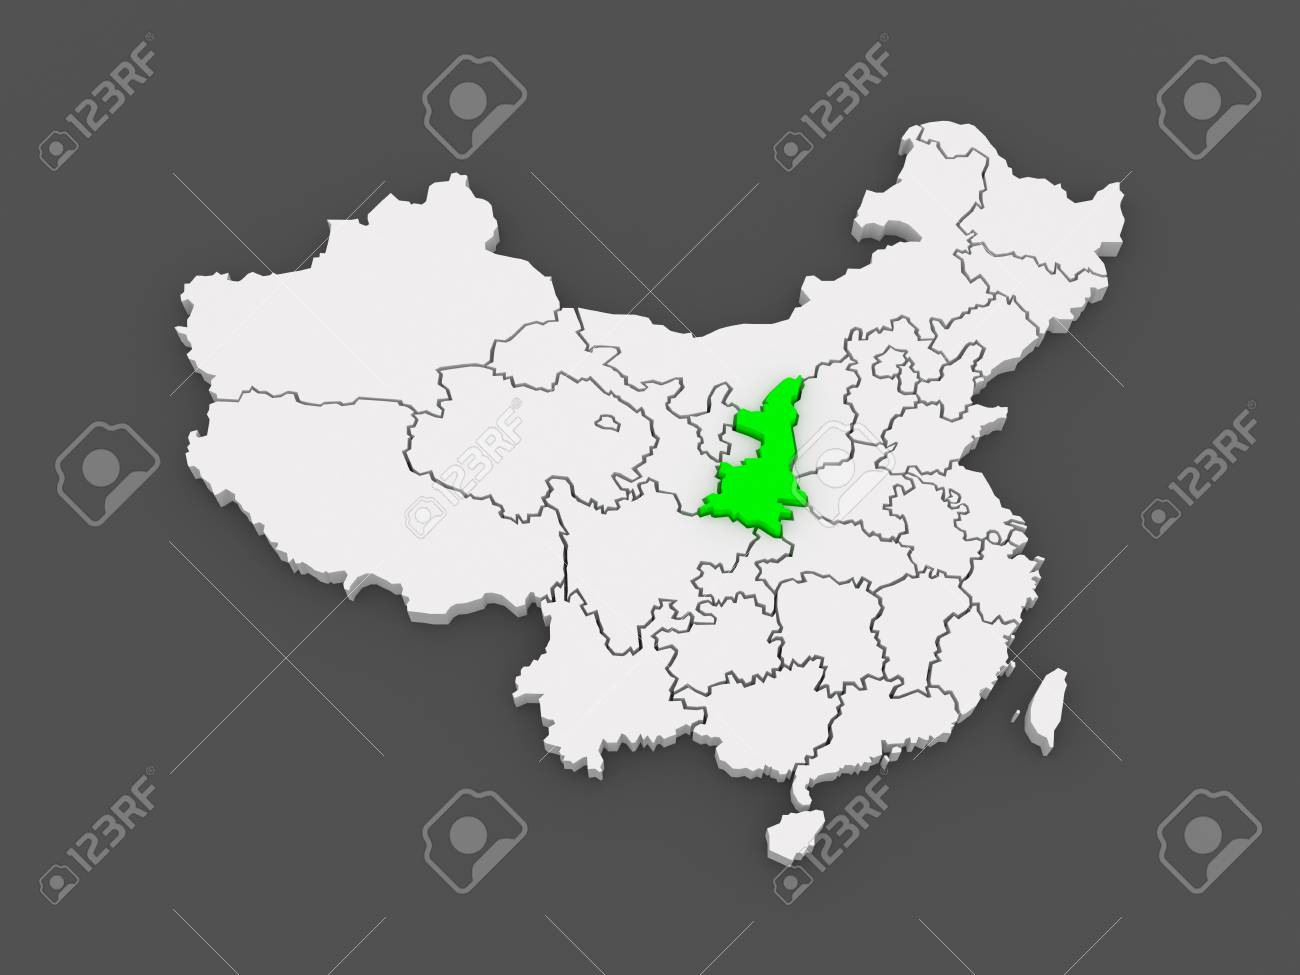 Map of shaanxi china 3d stock photo picture and royalty free map of shaanxi china 3d stock photo 29969227 gumiabroncs Images